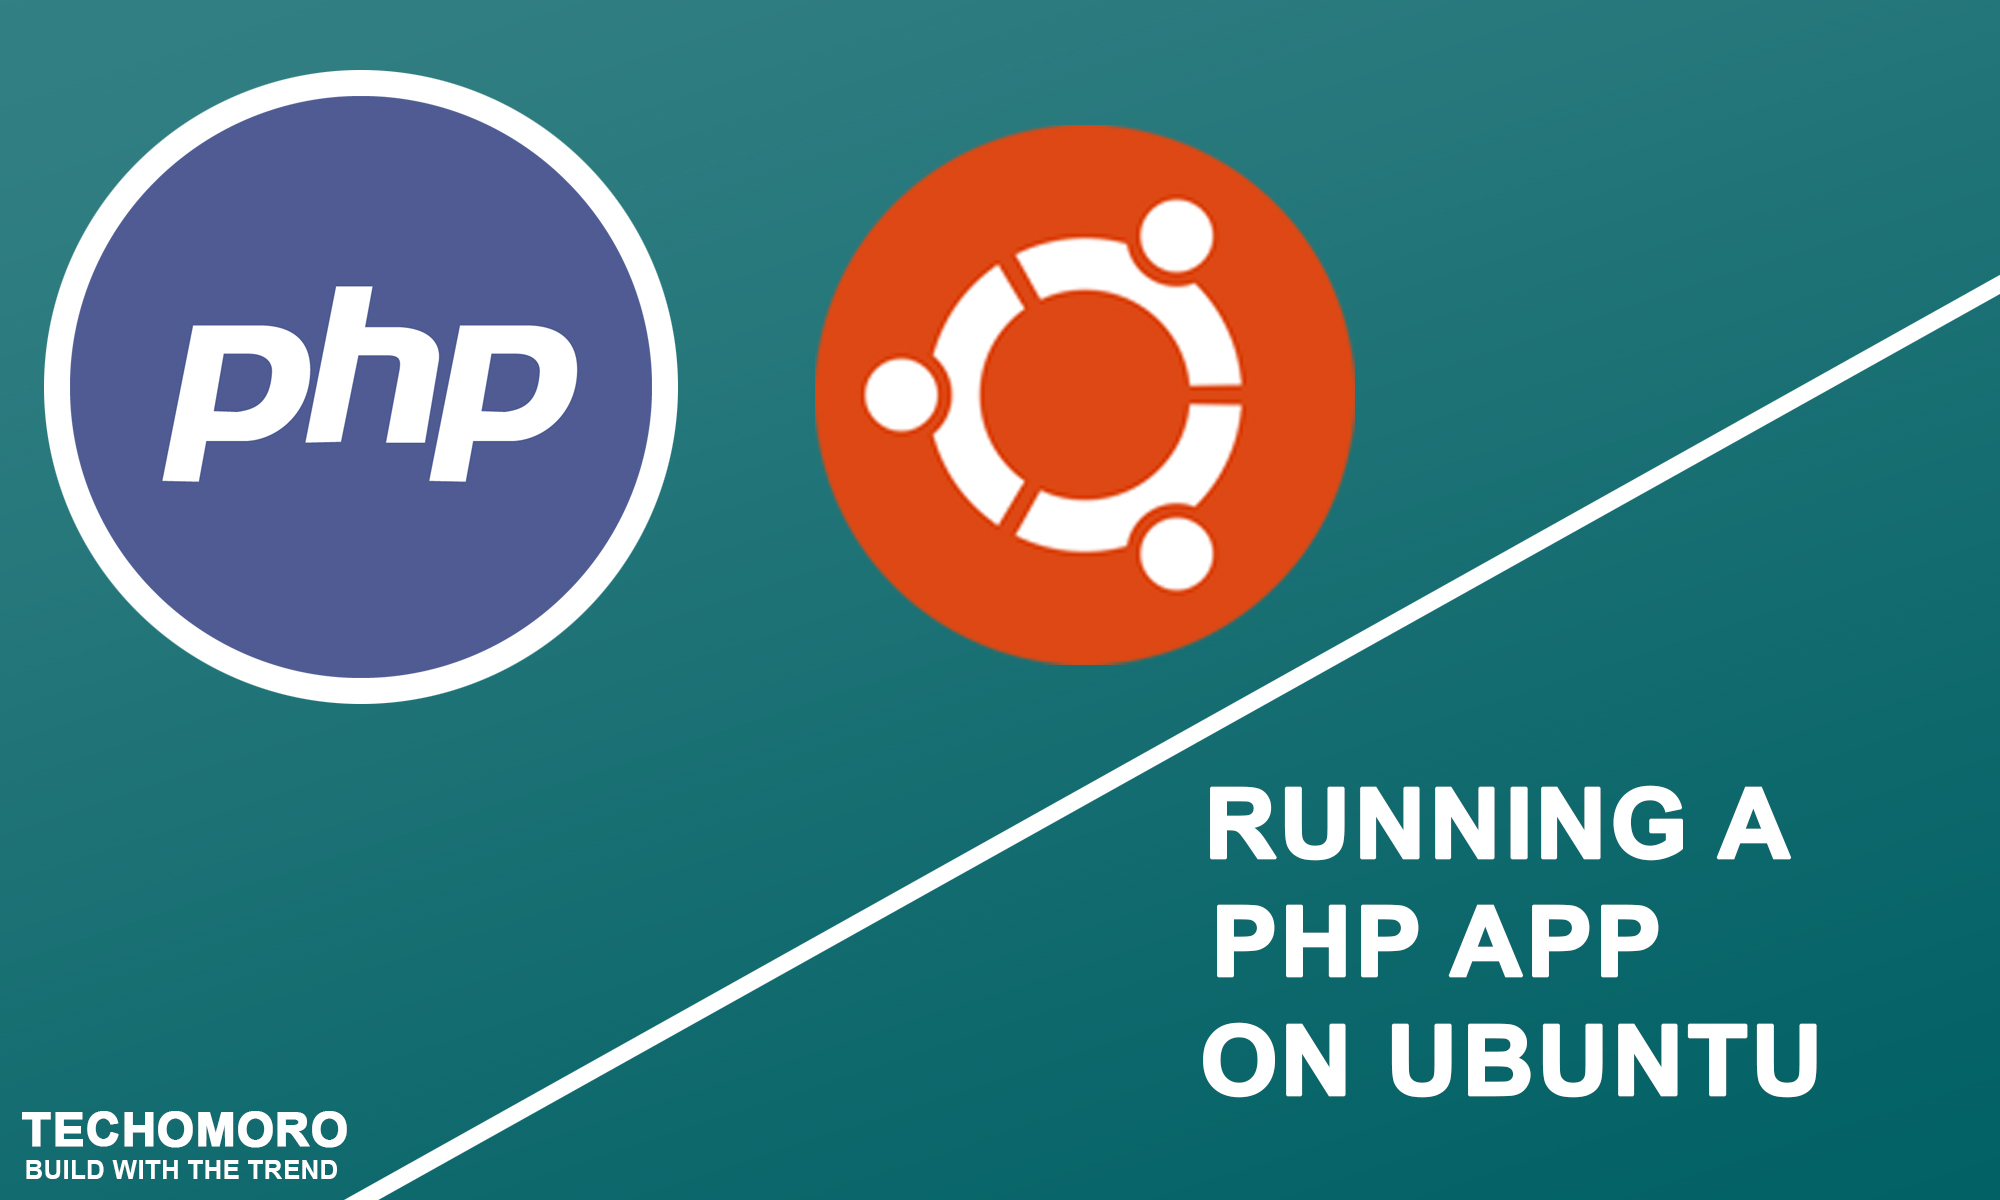 How to Run a PHP Application on Ubuntu 18.04.2 LTS